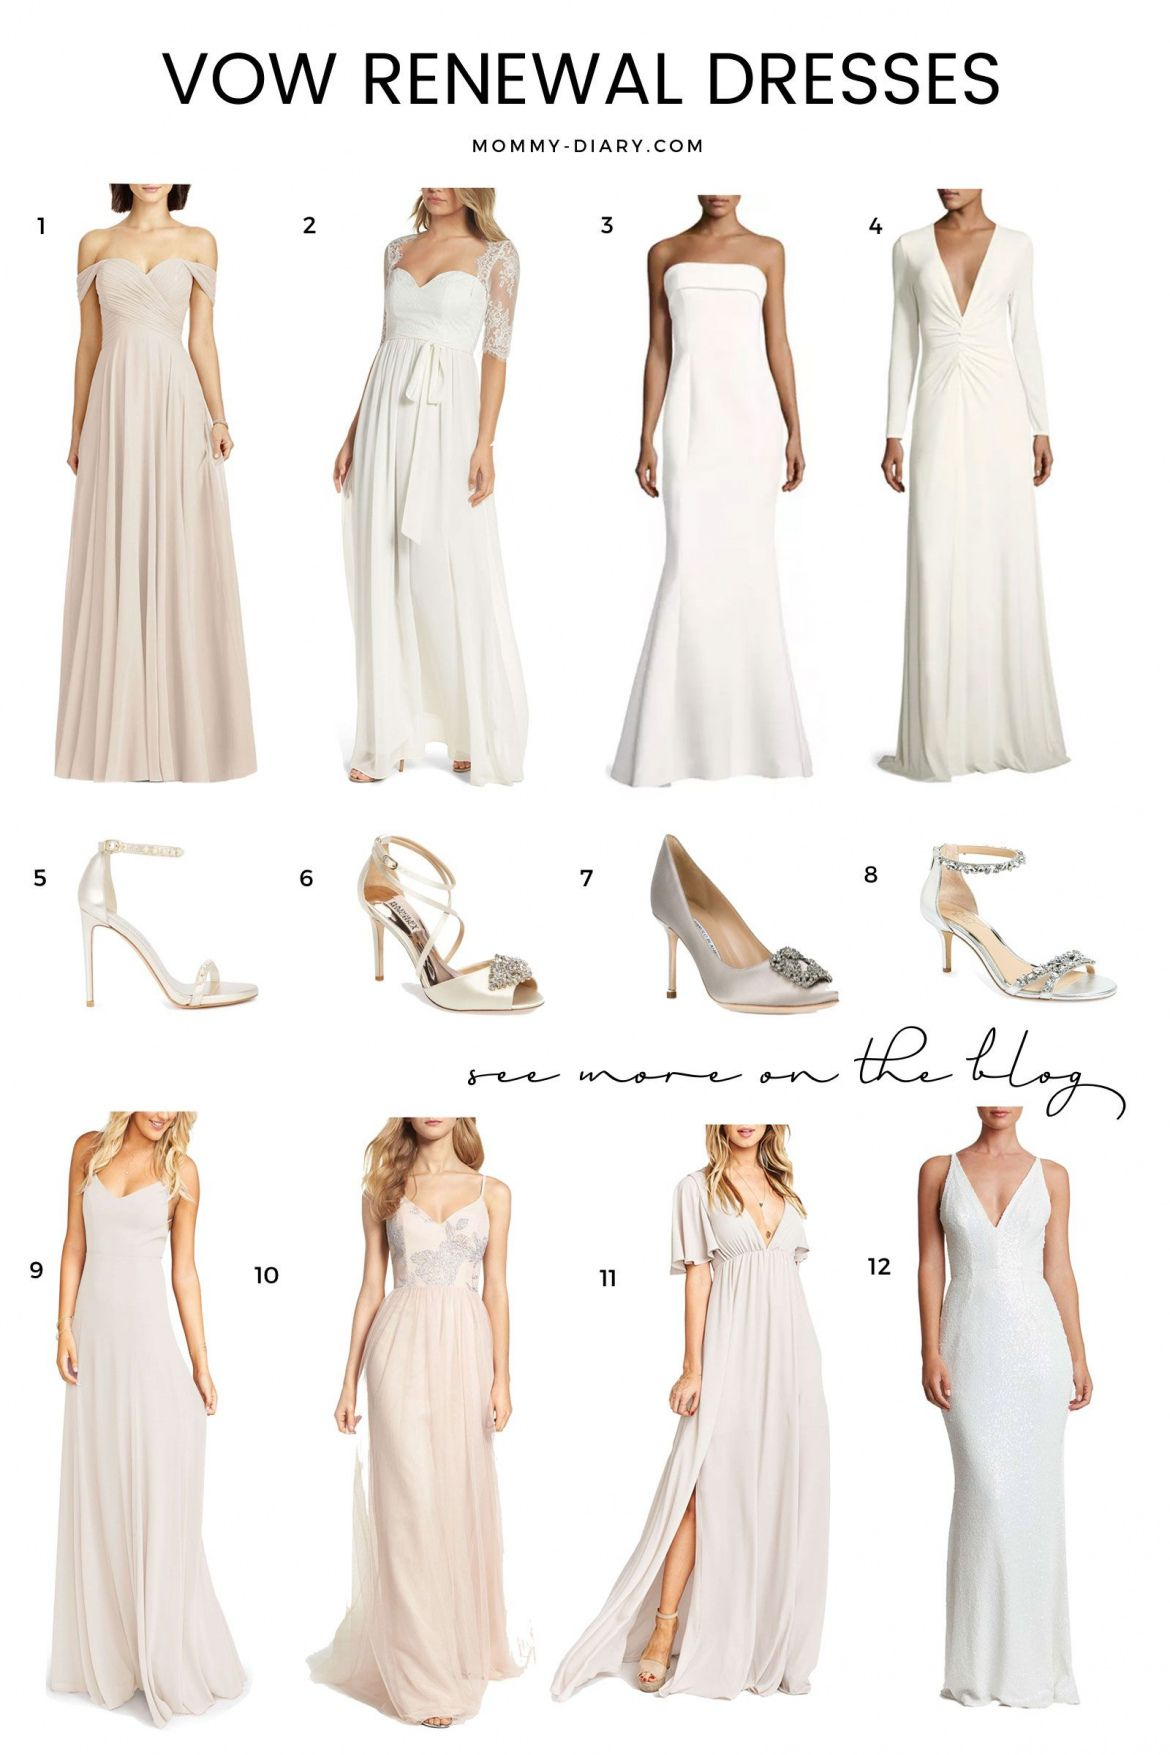 70+ Wedding Vow Renewal Dresses - Plus Size Dresses for Wedding ...